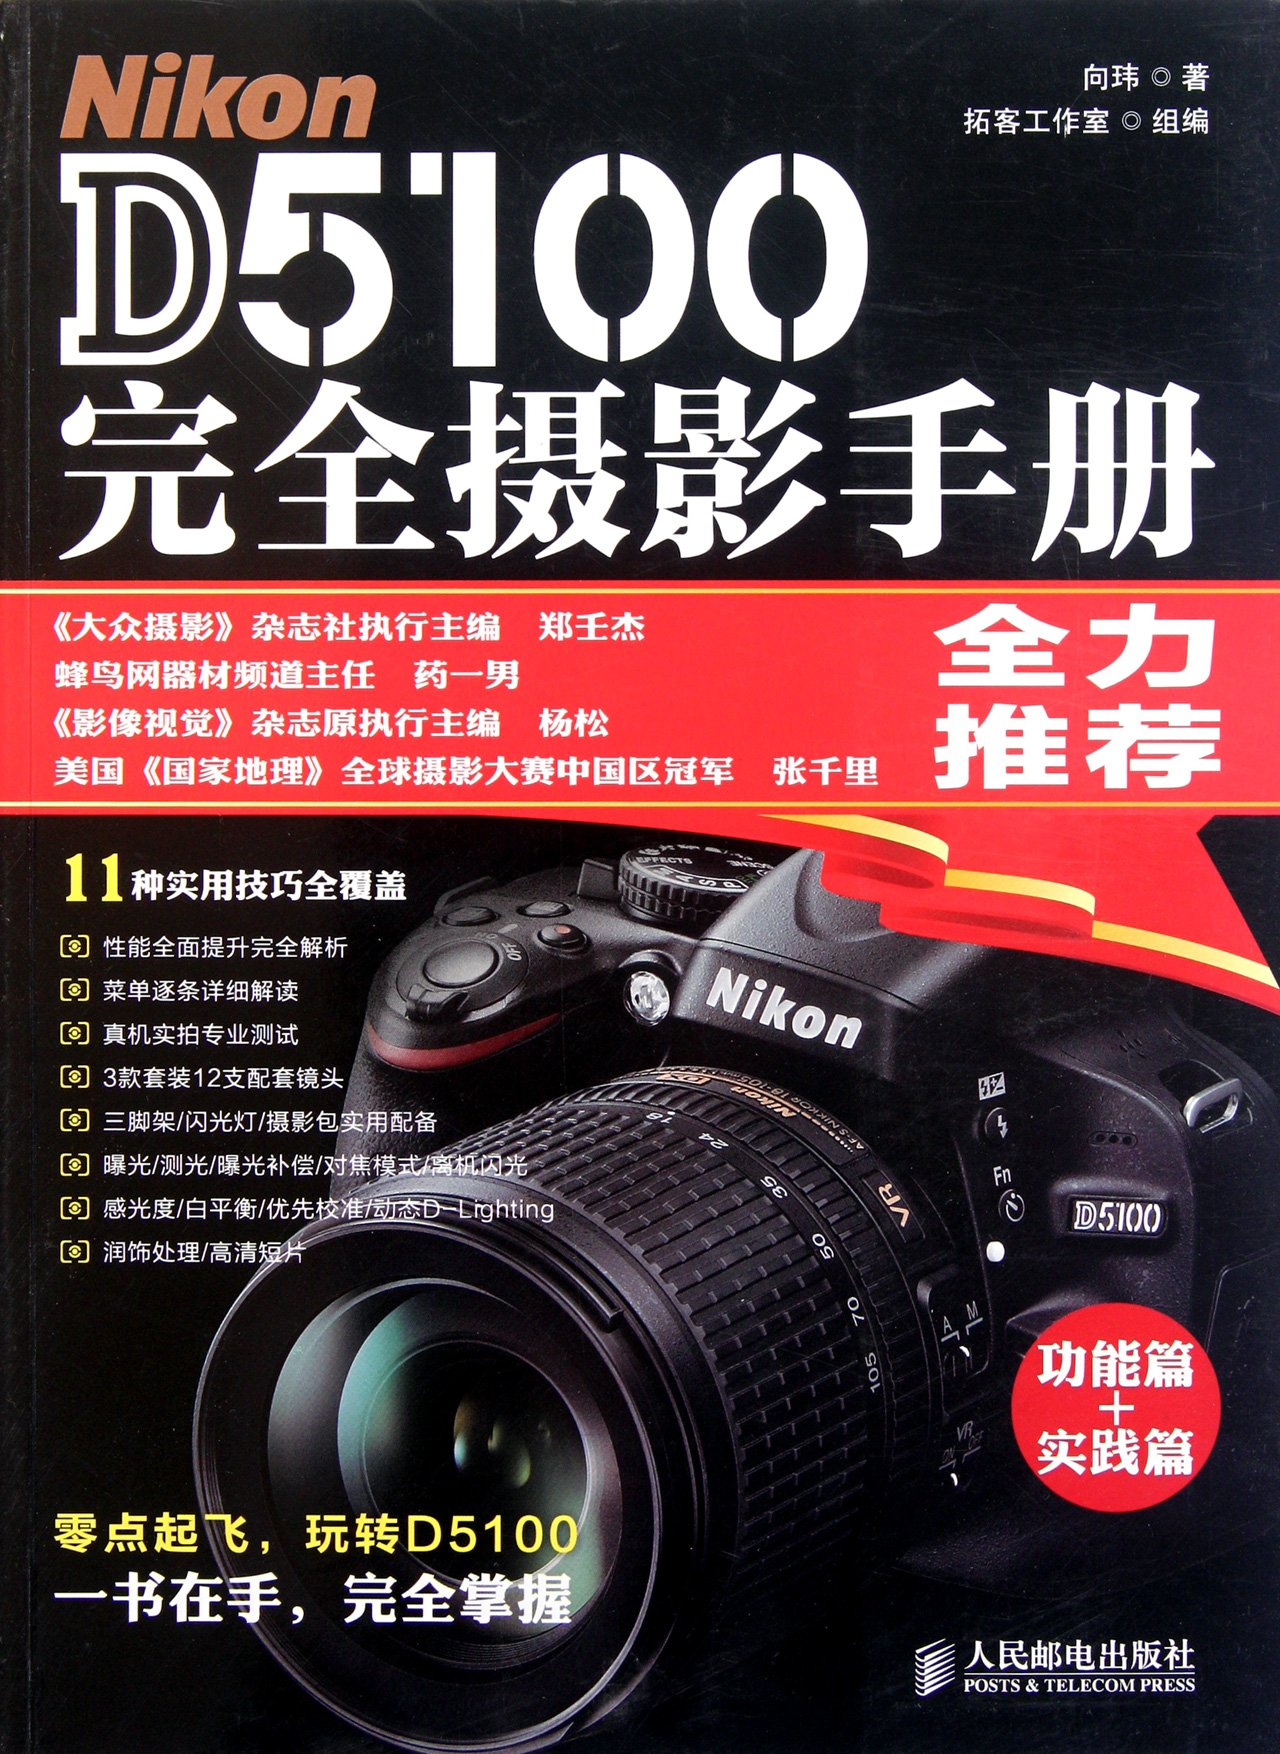 Nikon D5100 Complete Photography Manual (Chinese Edition) (Chinese)